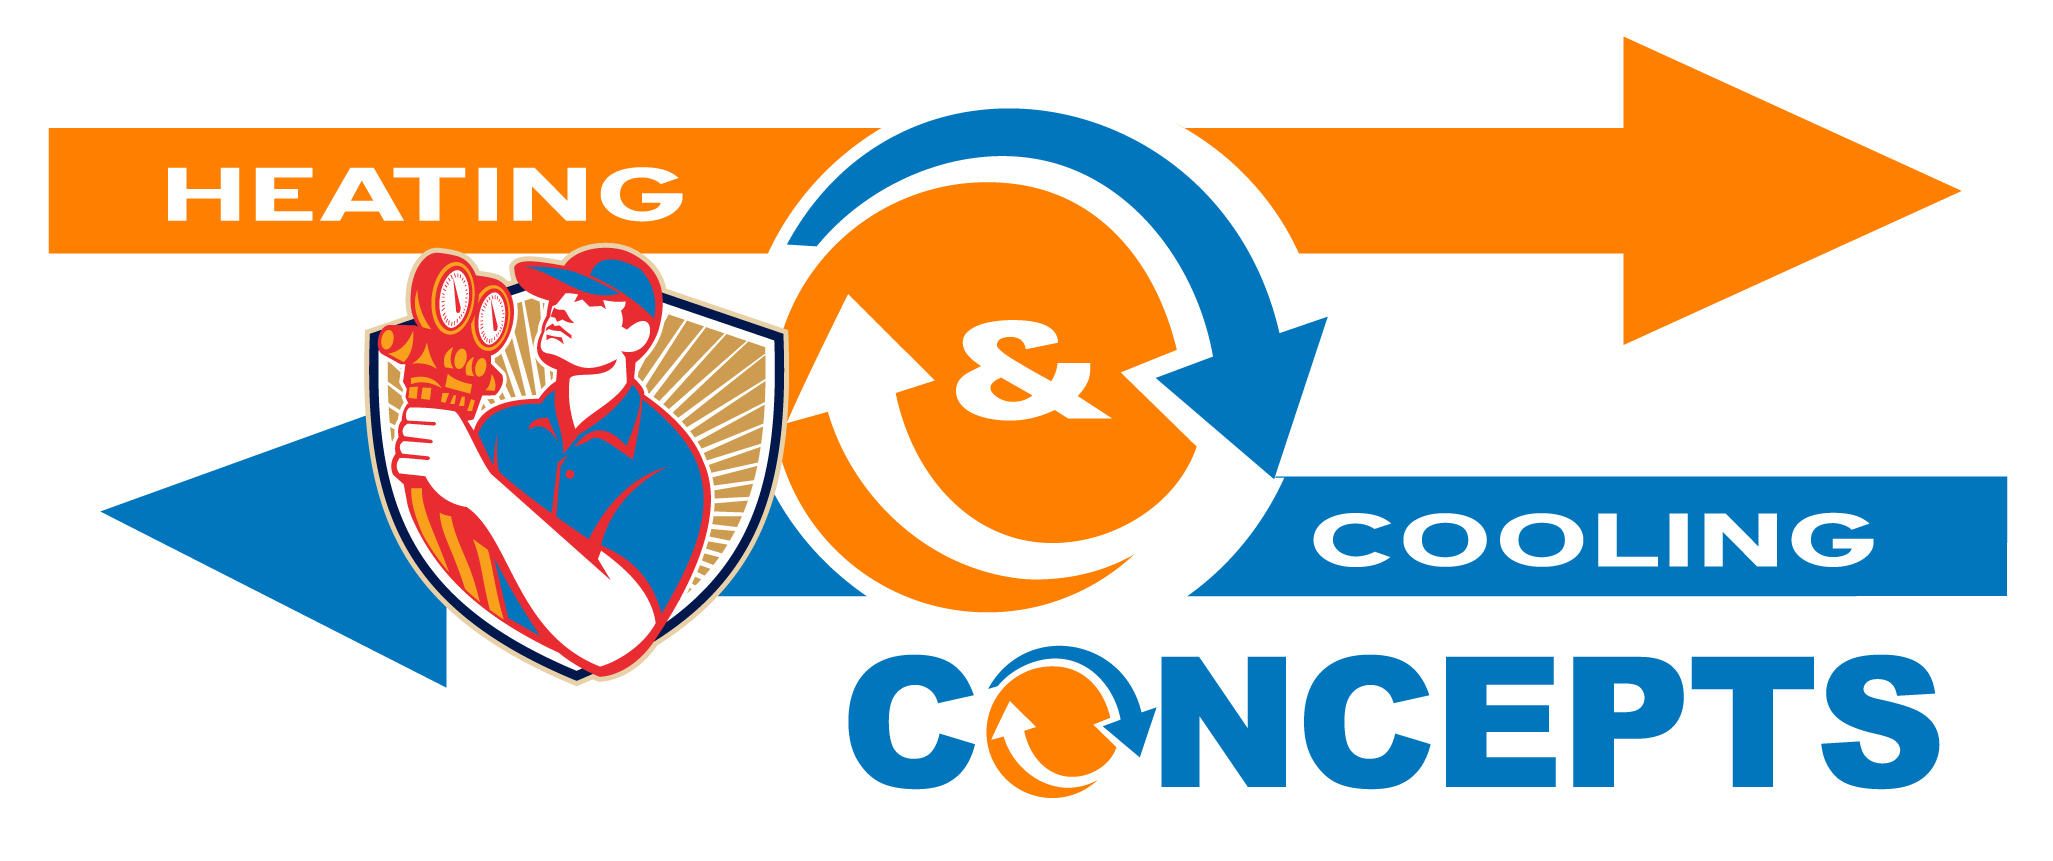 Heating & Cooling Concepts